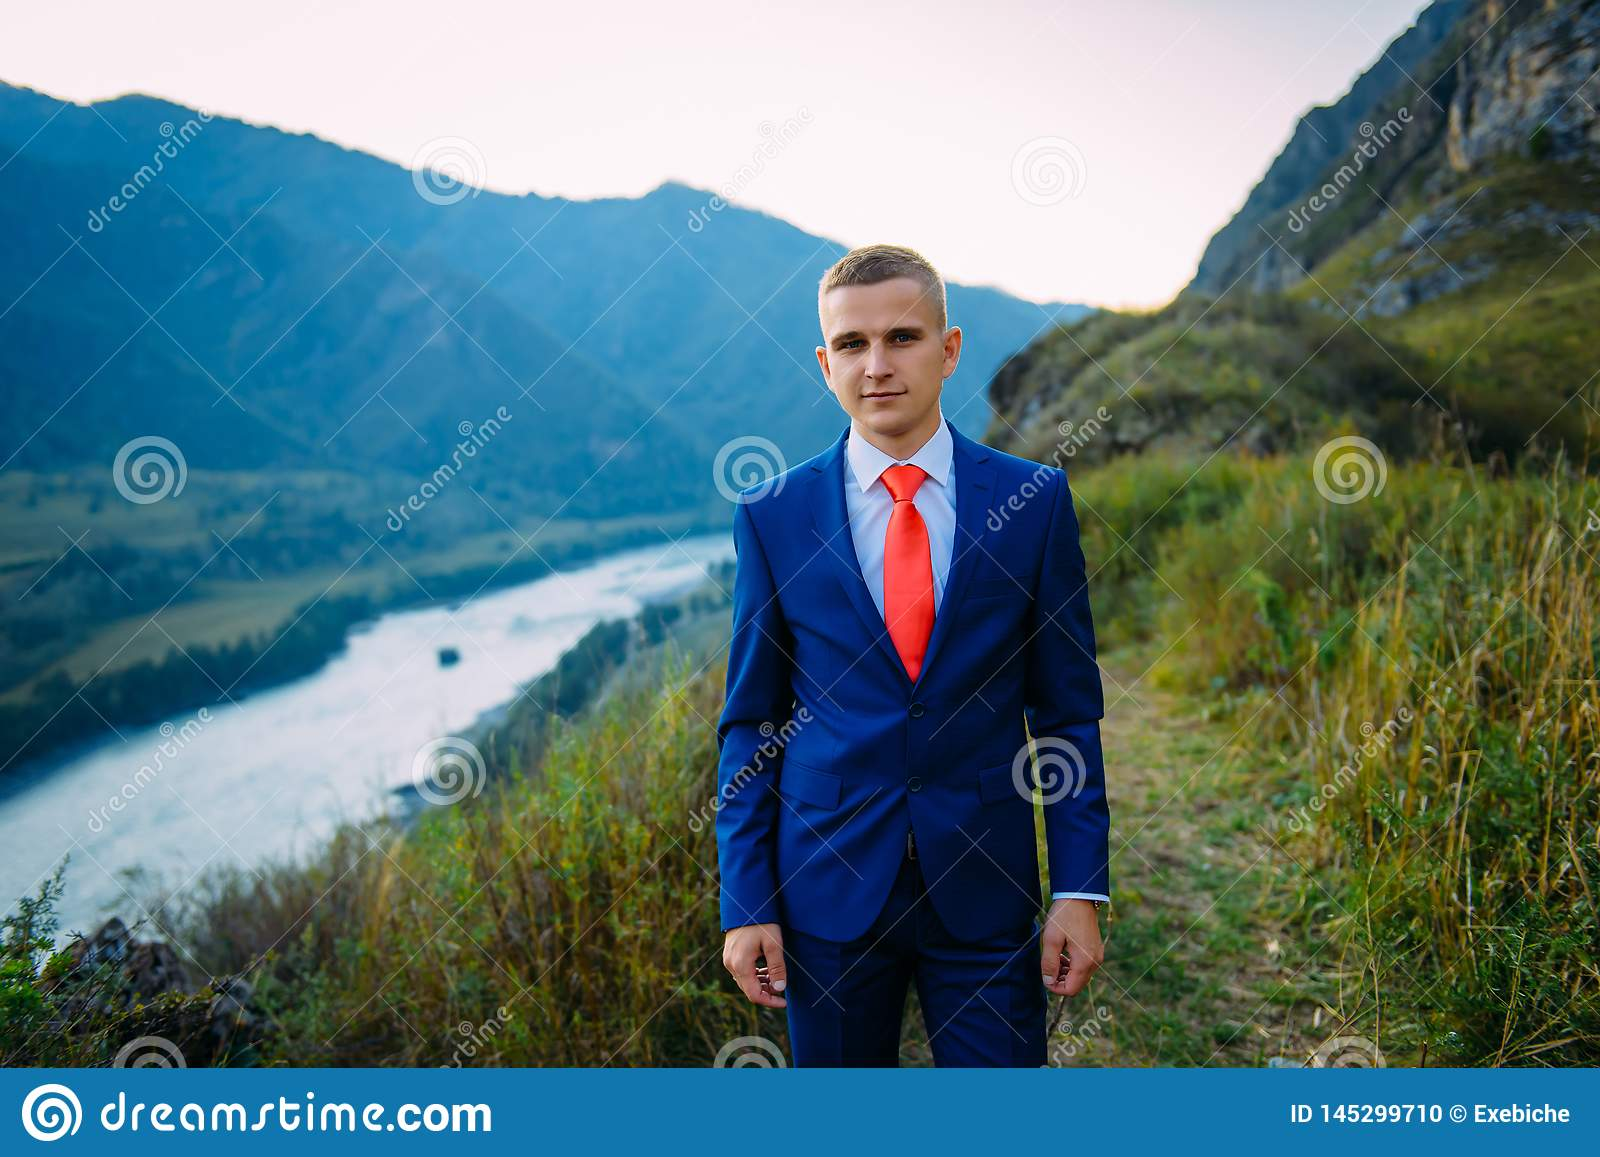 Businessman in a suit with red tie on the top of the world with background of mountains